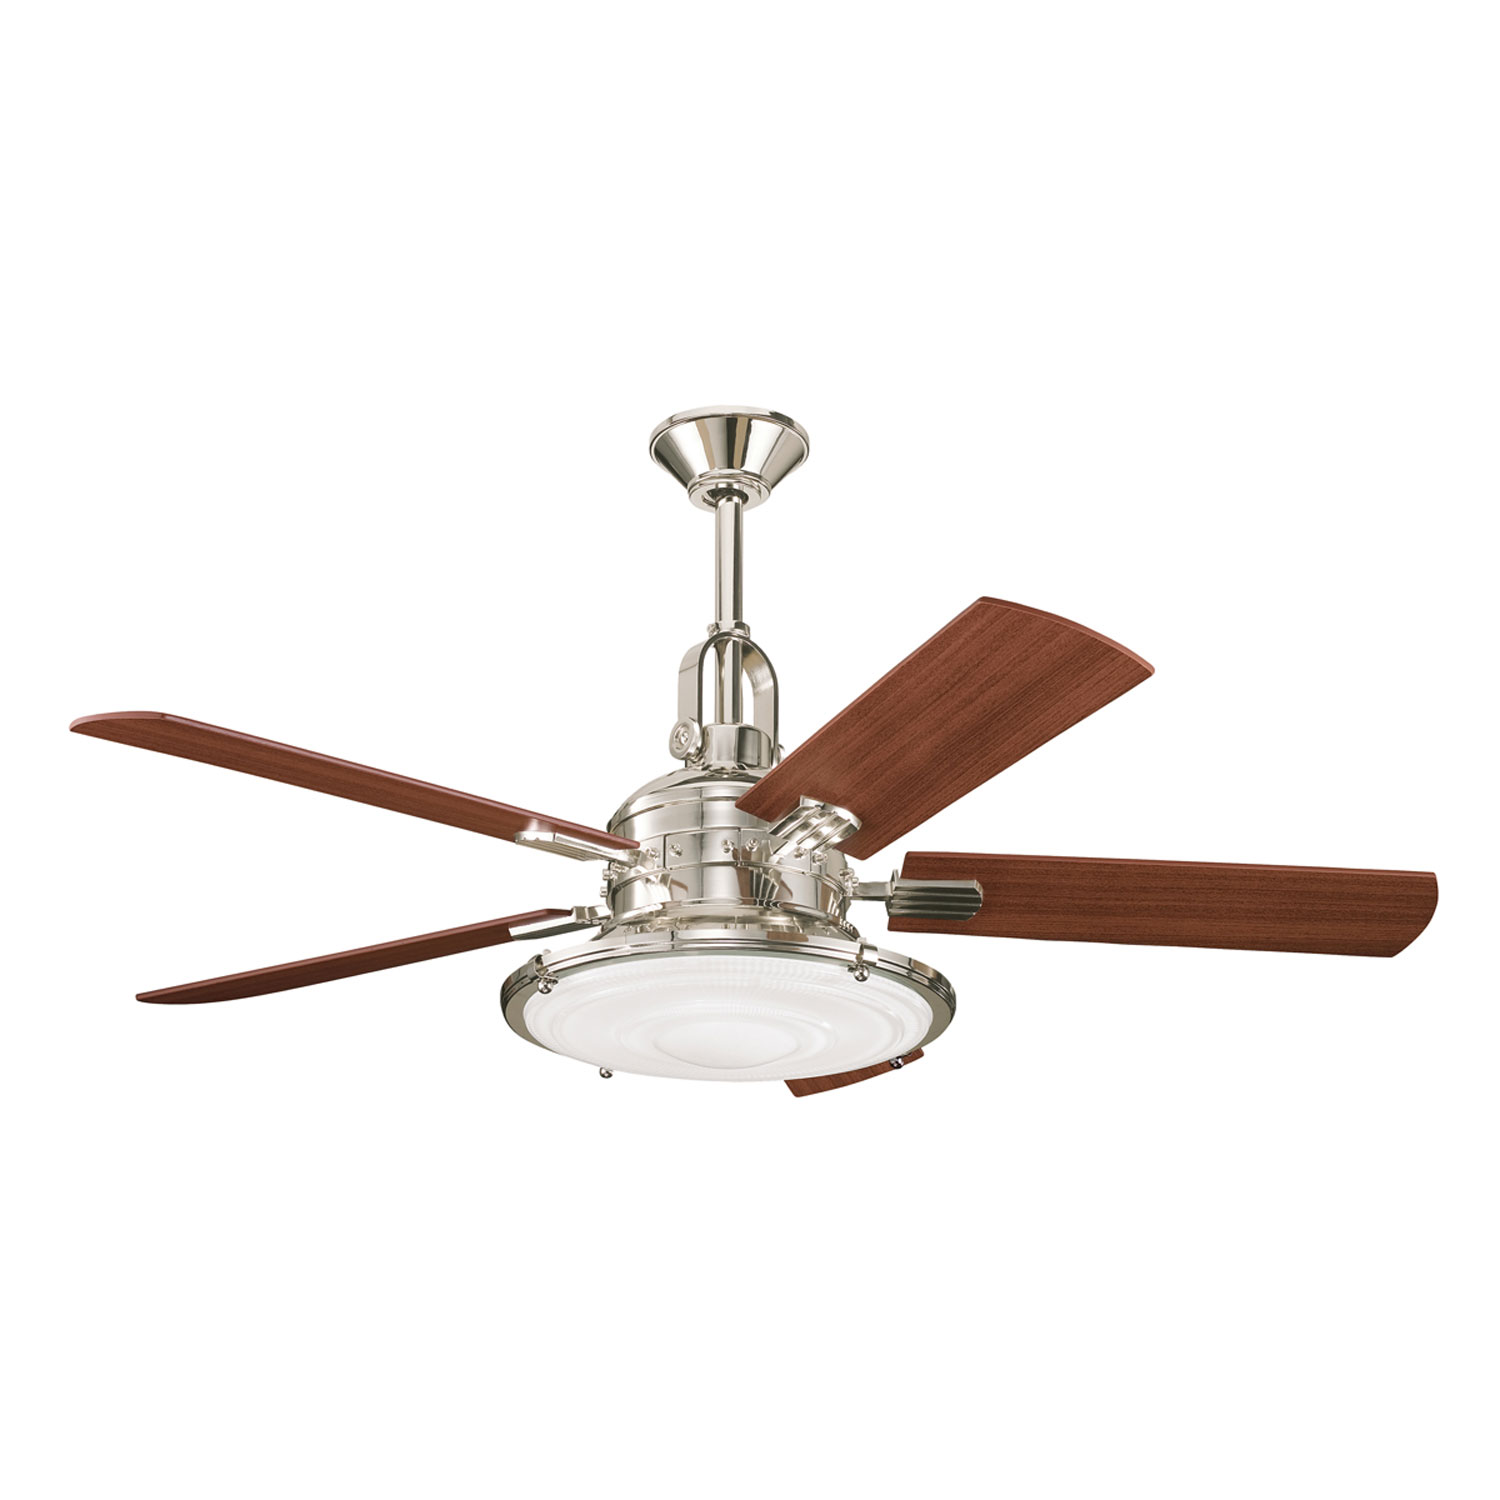 52 inchCeiling Fan from the Kittery Point collection by Kichler 300020PN